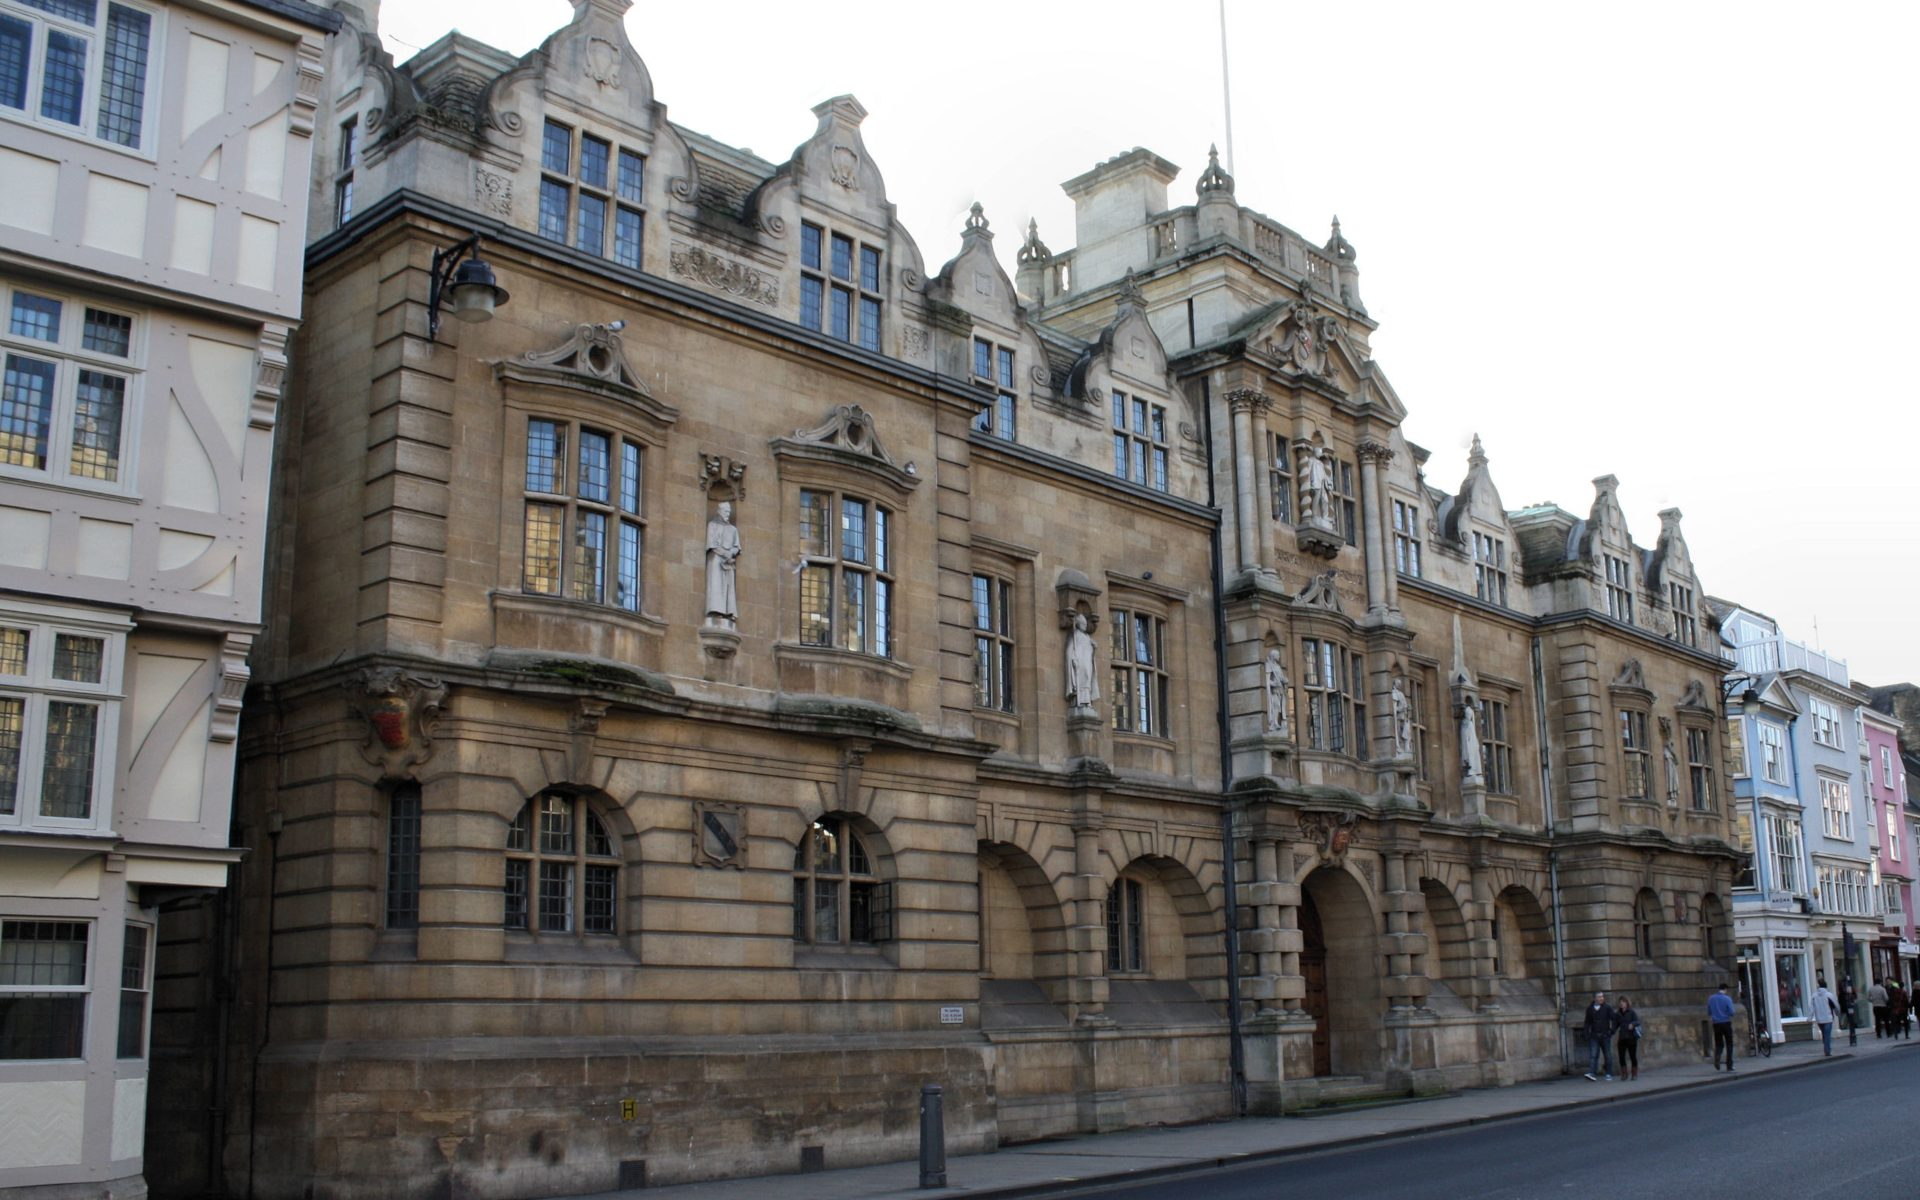 Rhodes Building, Oriel College. By Robert Cutts - https://www.flickr.com/photos/panr/6697486327/, CC BY-SA 2.0, https://commons.wikimedia.org/w/index.php?curid=91167023